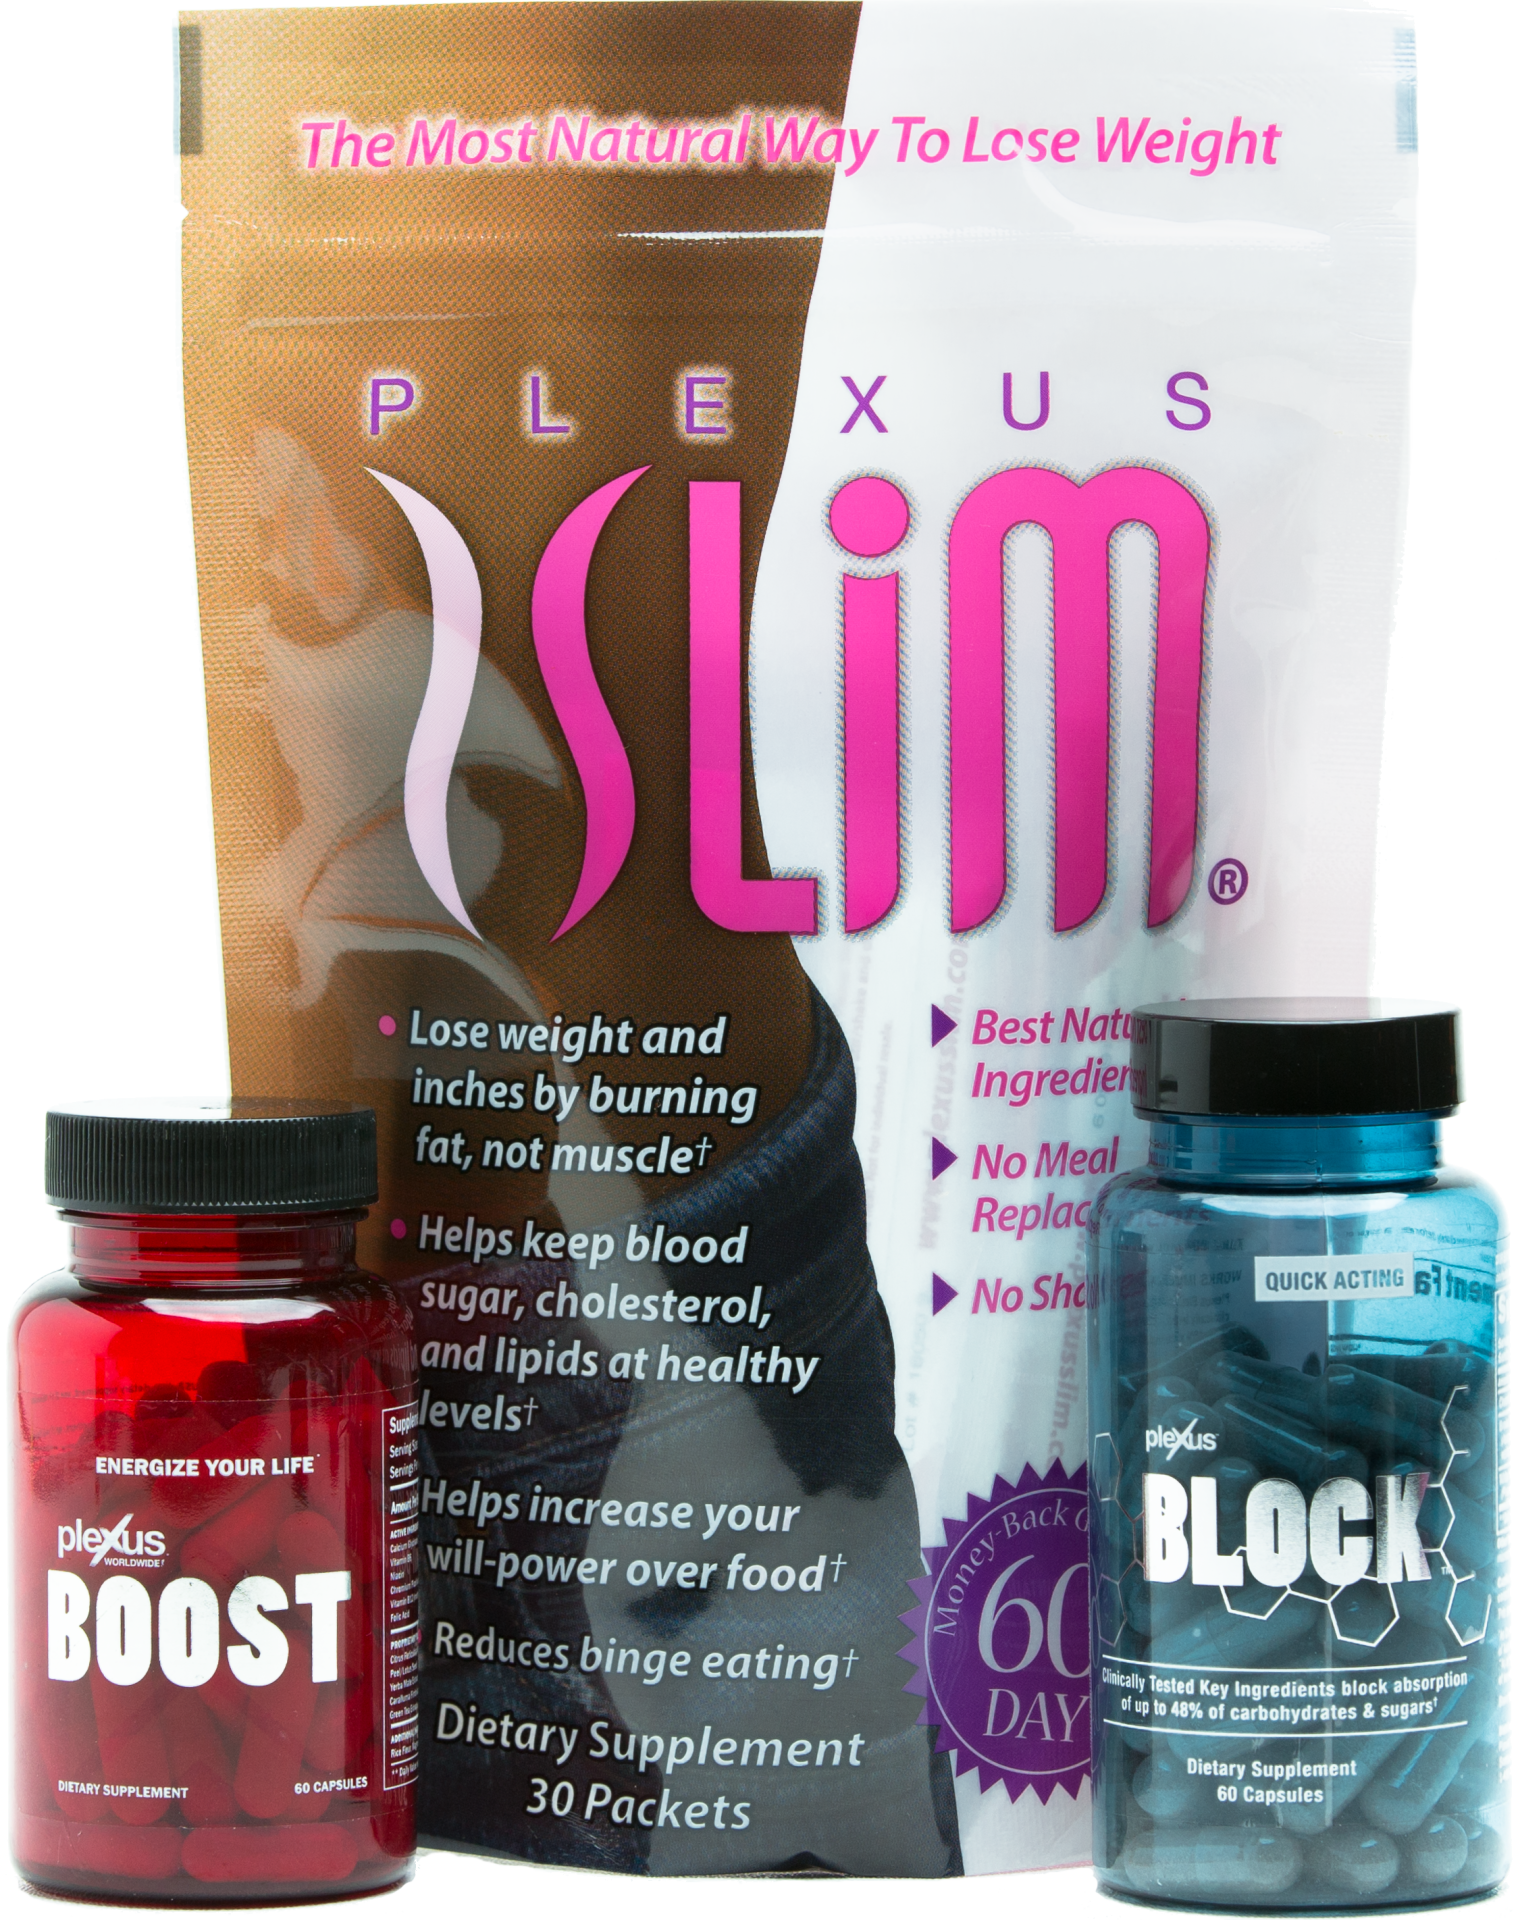 Plexus Slim, Boost, & BLOCK